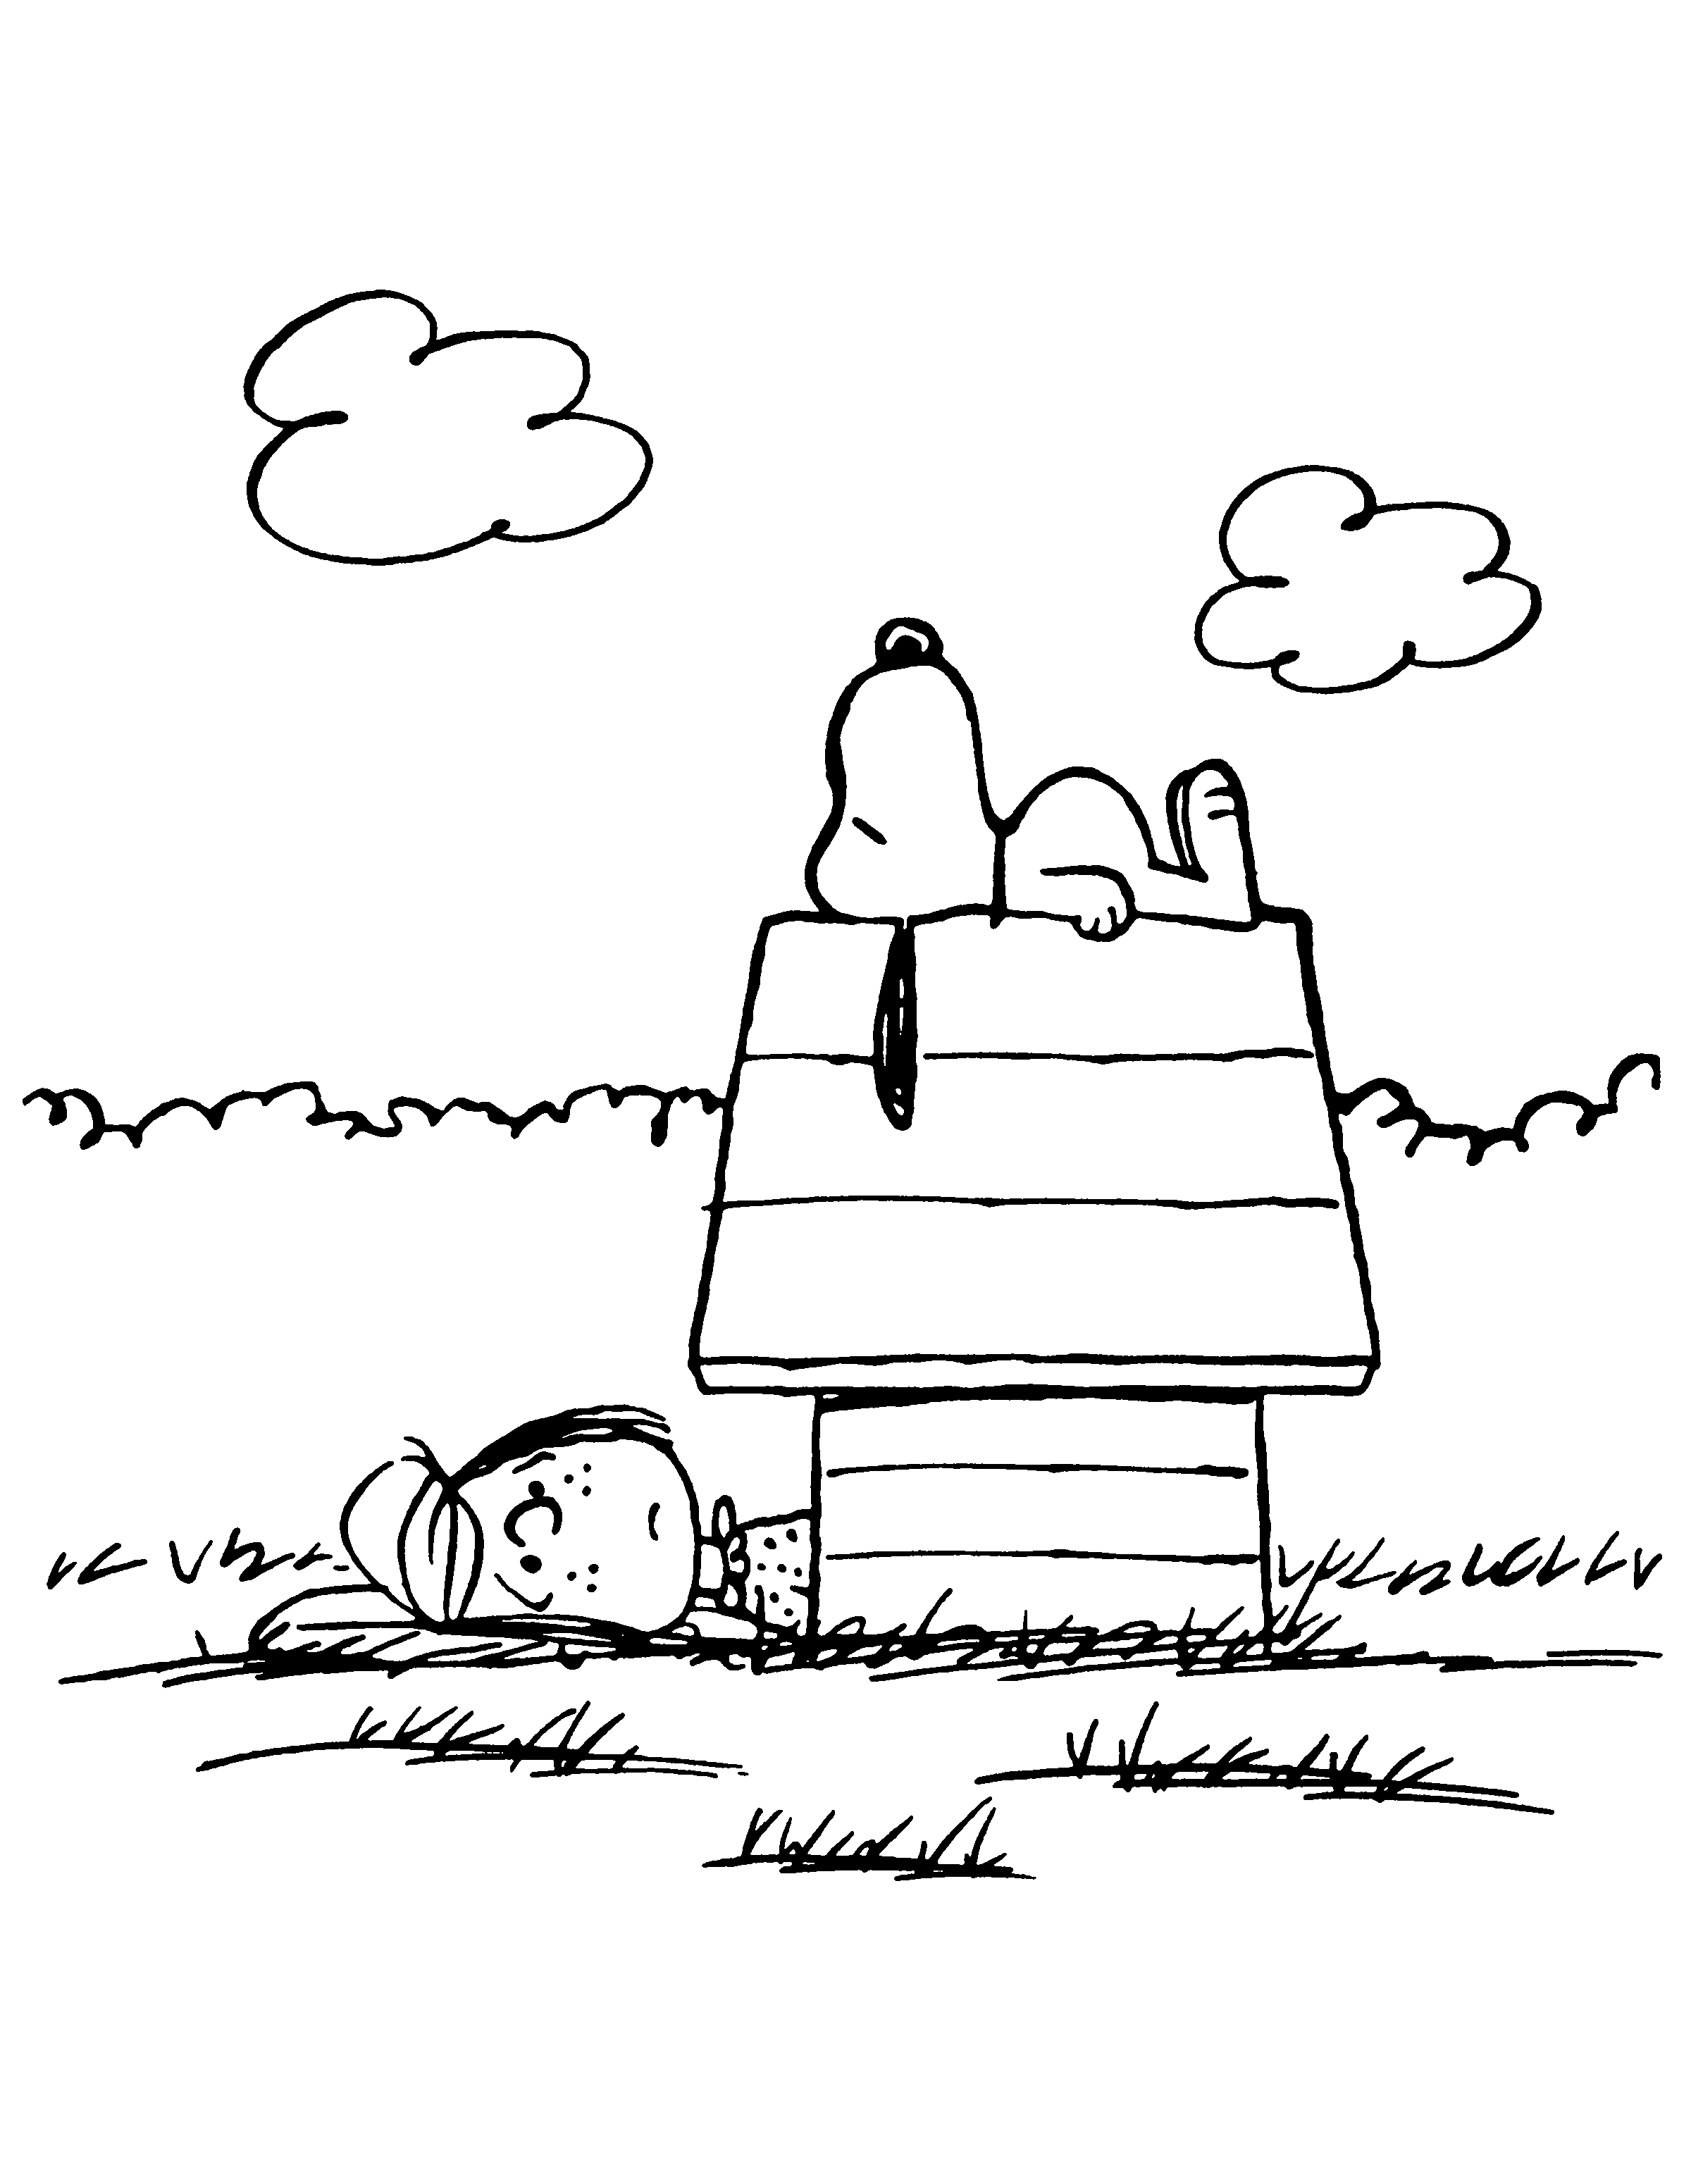 Peppermint Patty and Snoopy | Peanuts | Pinterest | Cómics, Me ...